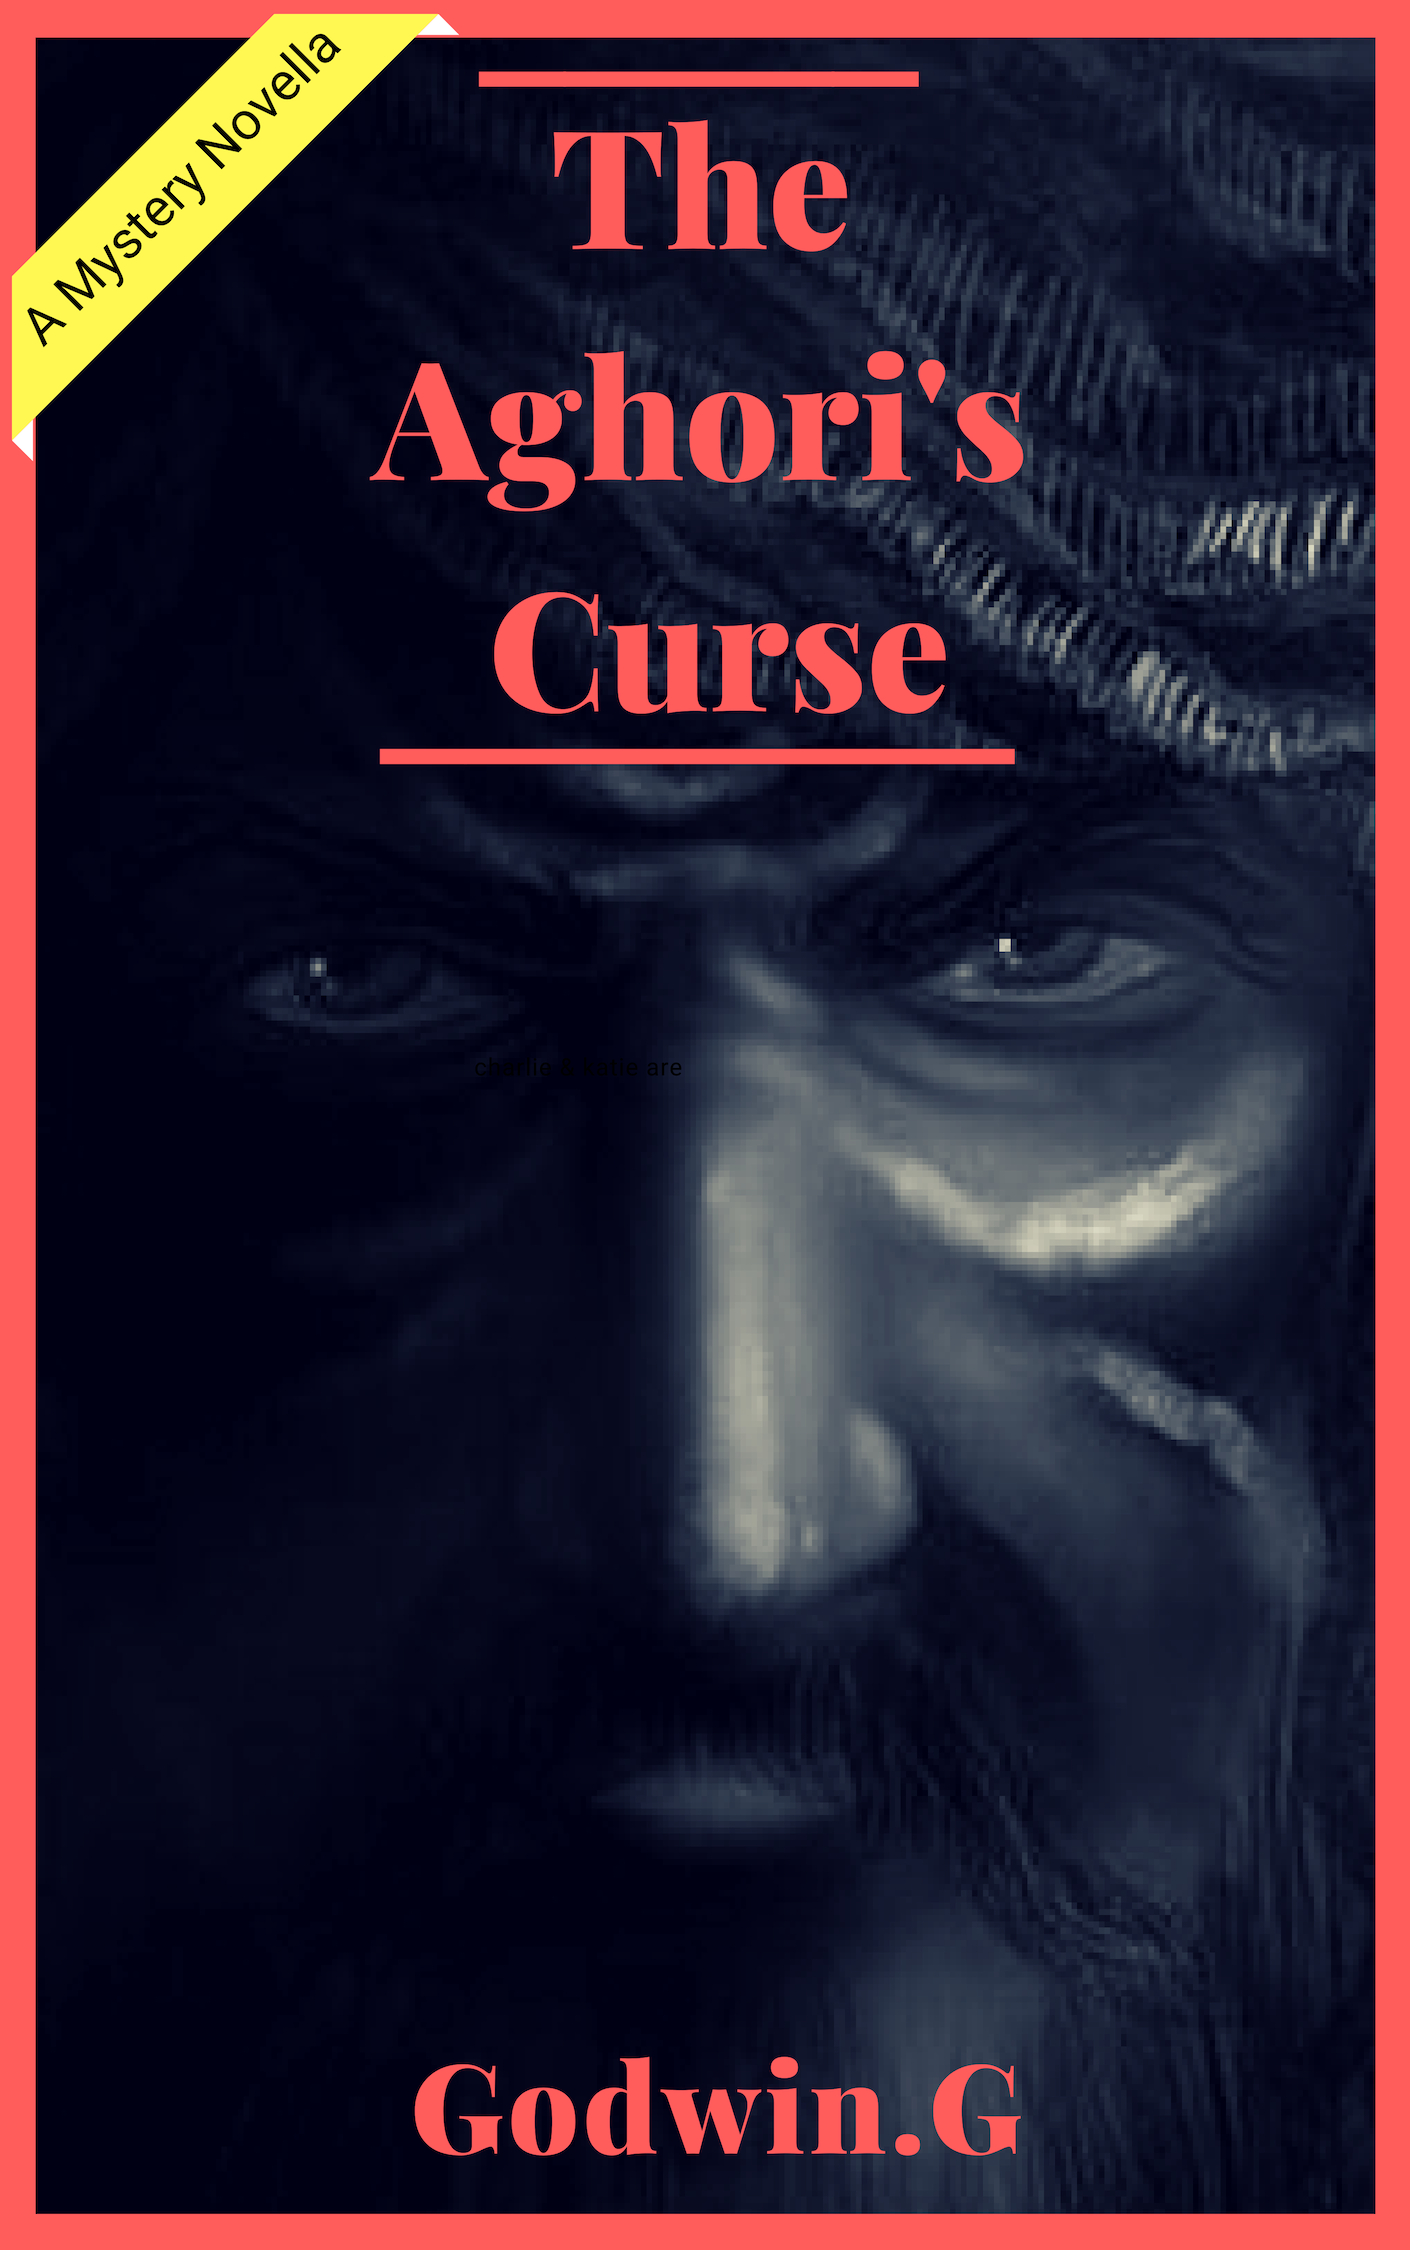 My debut fiction book! Now available on Amazon.in. Go, grab your copy today!